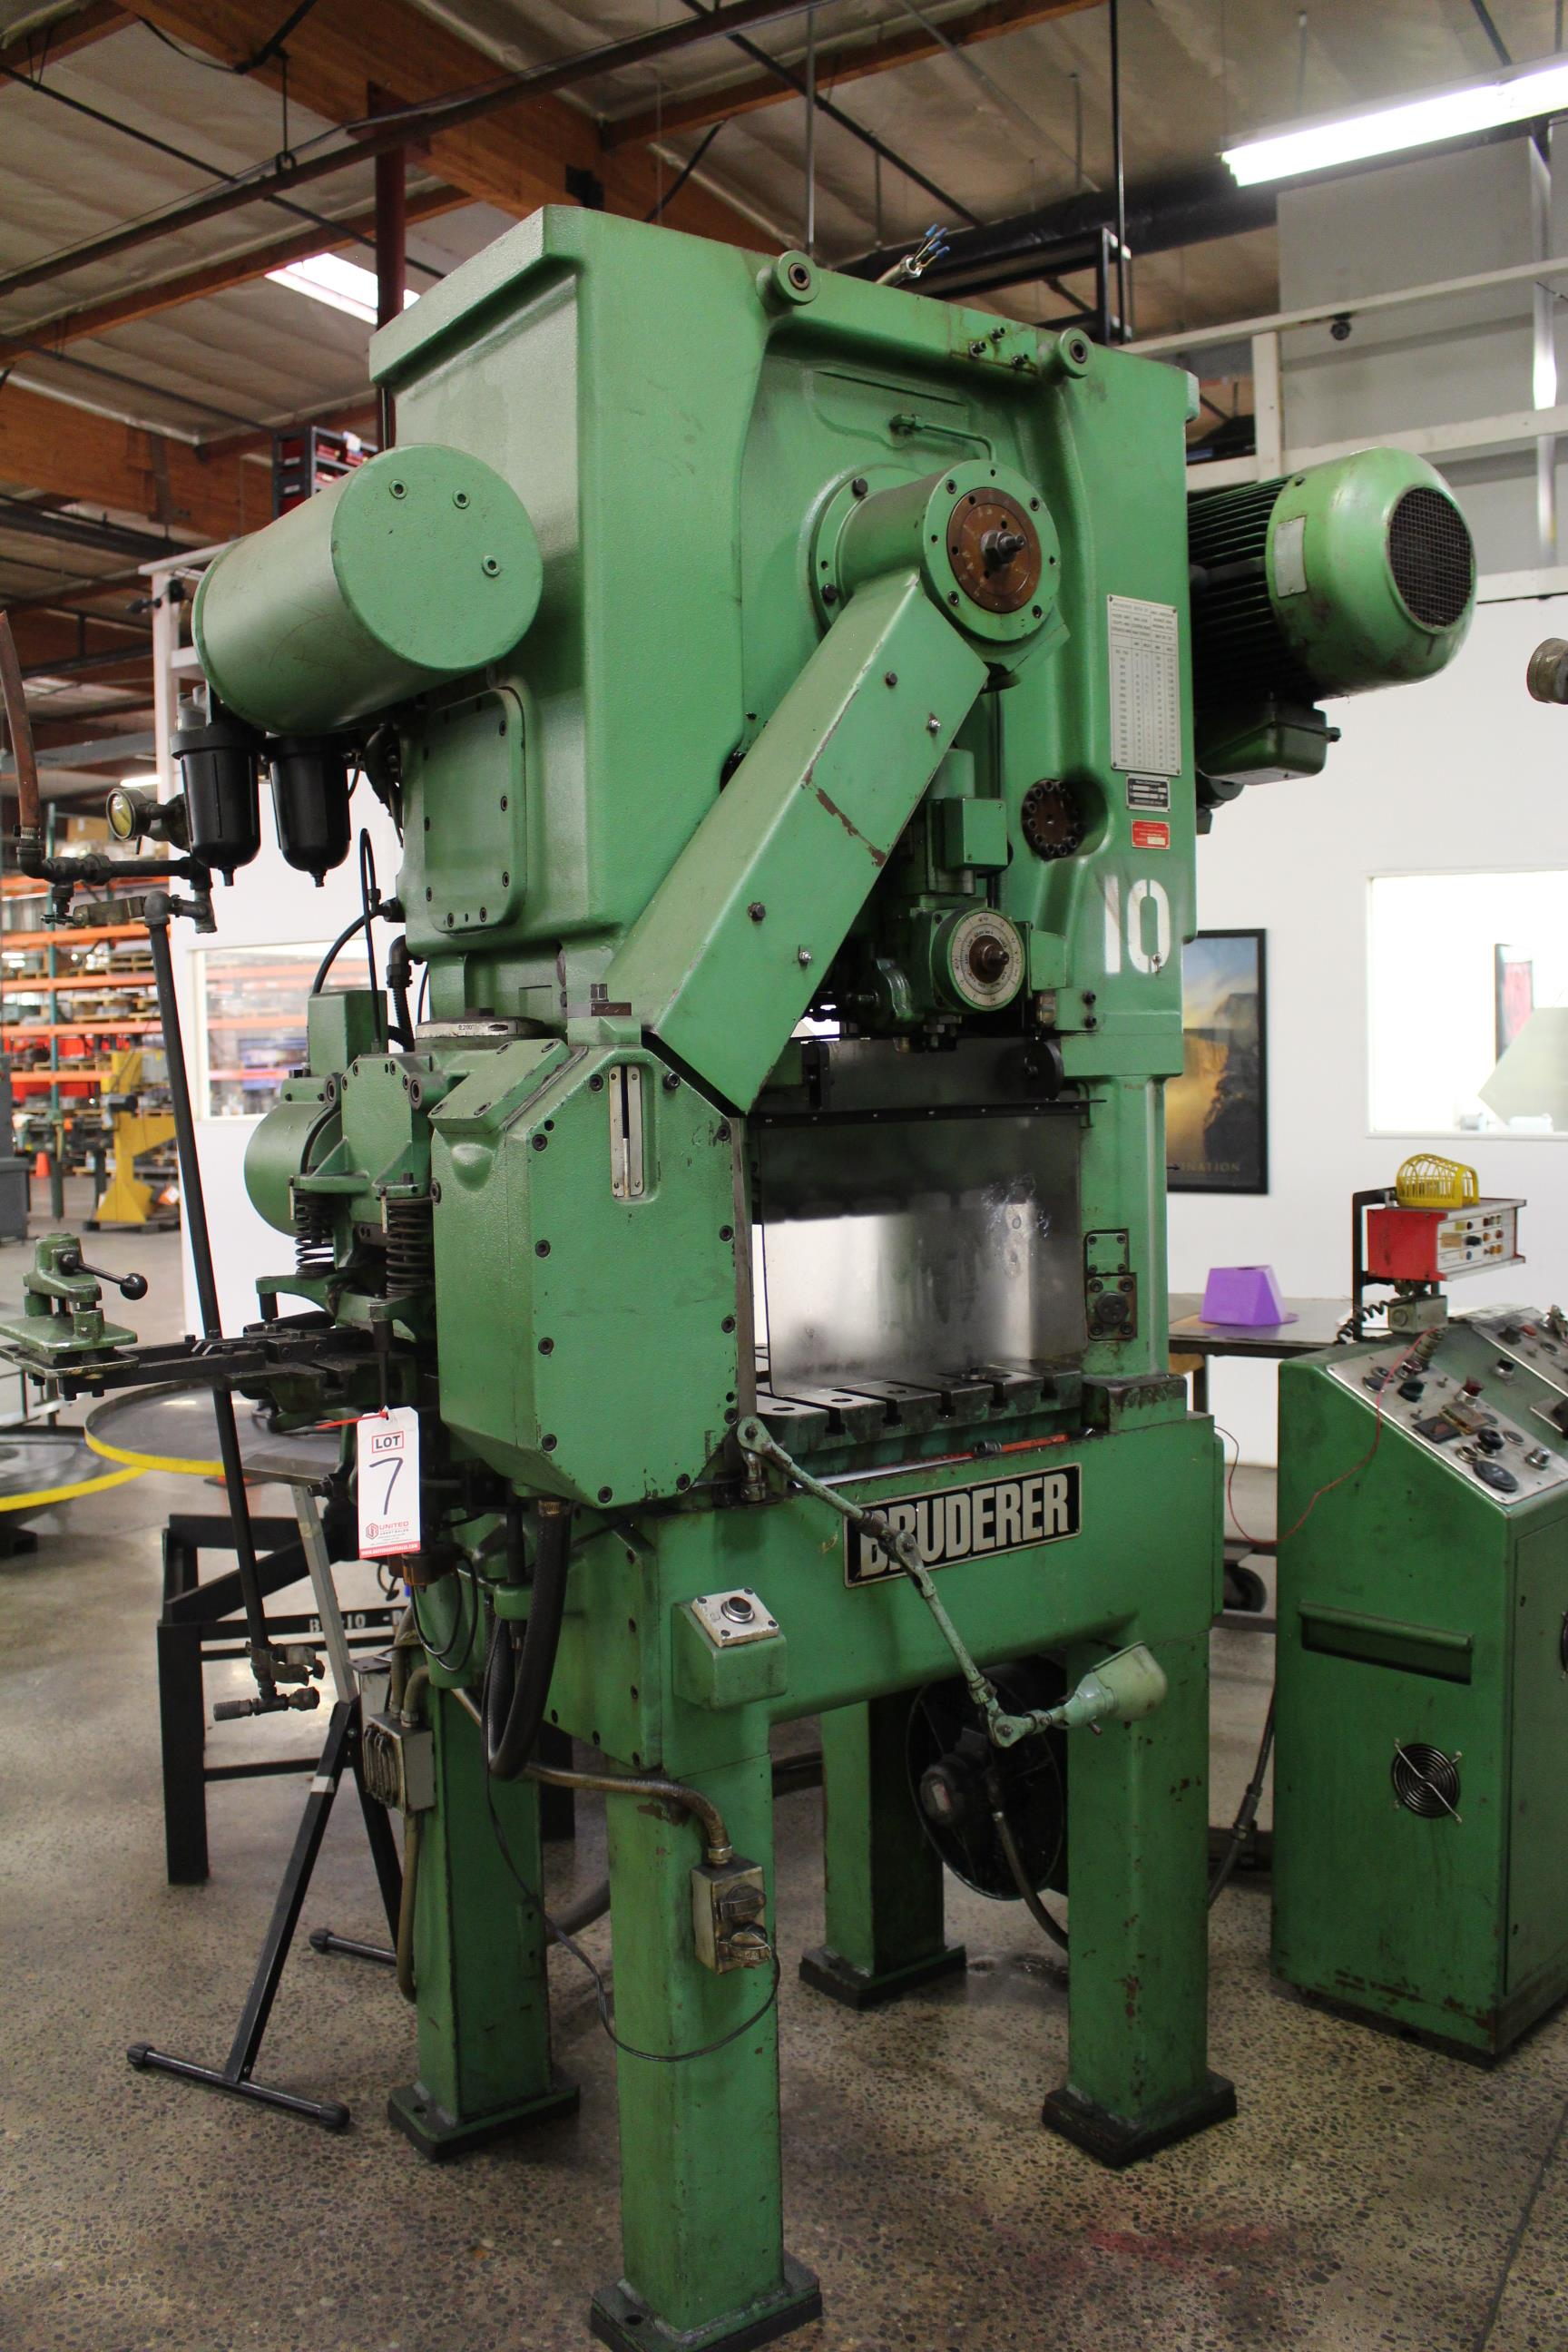 "BRUDERER MODEL BSTA 25 HIGH SPEED STAMPING PRESS, 25 TON CAPACITY, 21.26"" X 20.8"" BOLSTER, 100-1,500 - Image 2 of 8"